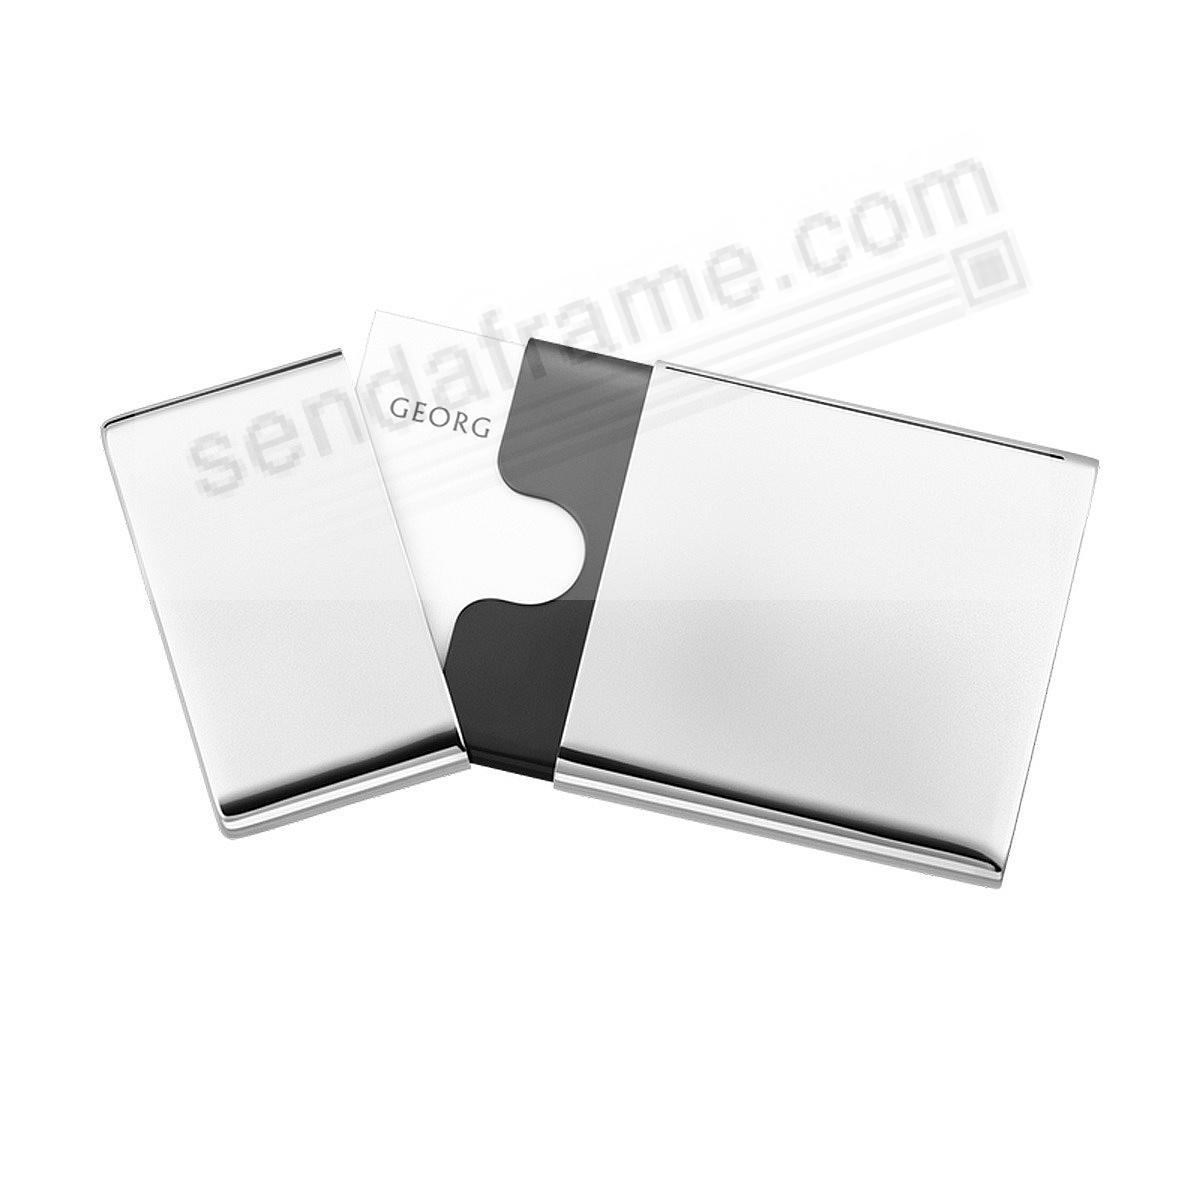 The TO GO Card Holder by Georg Jensen®